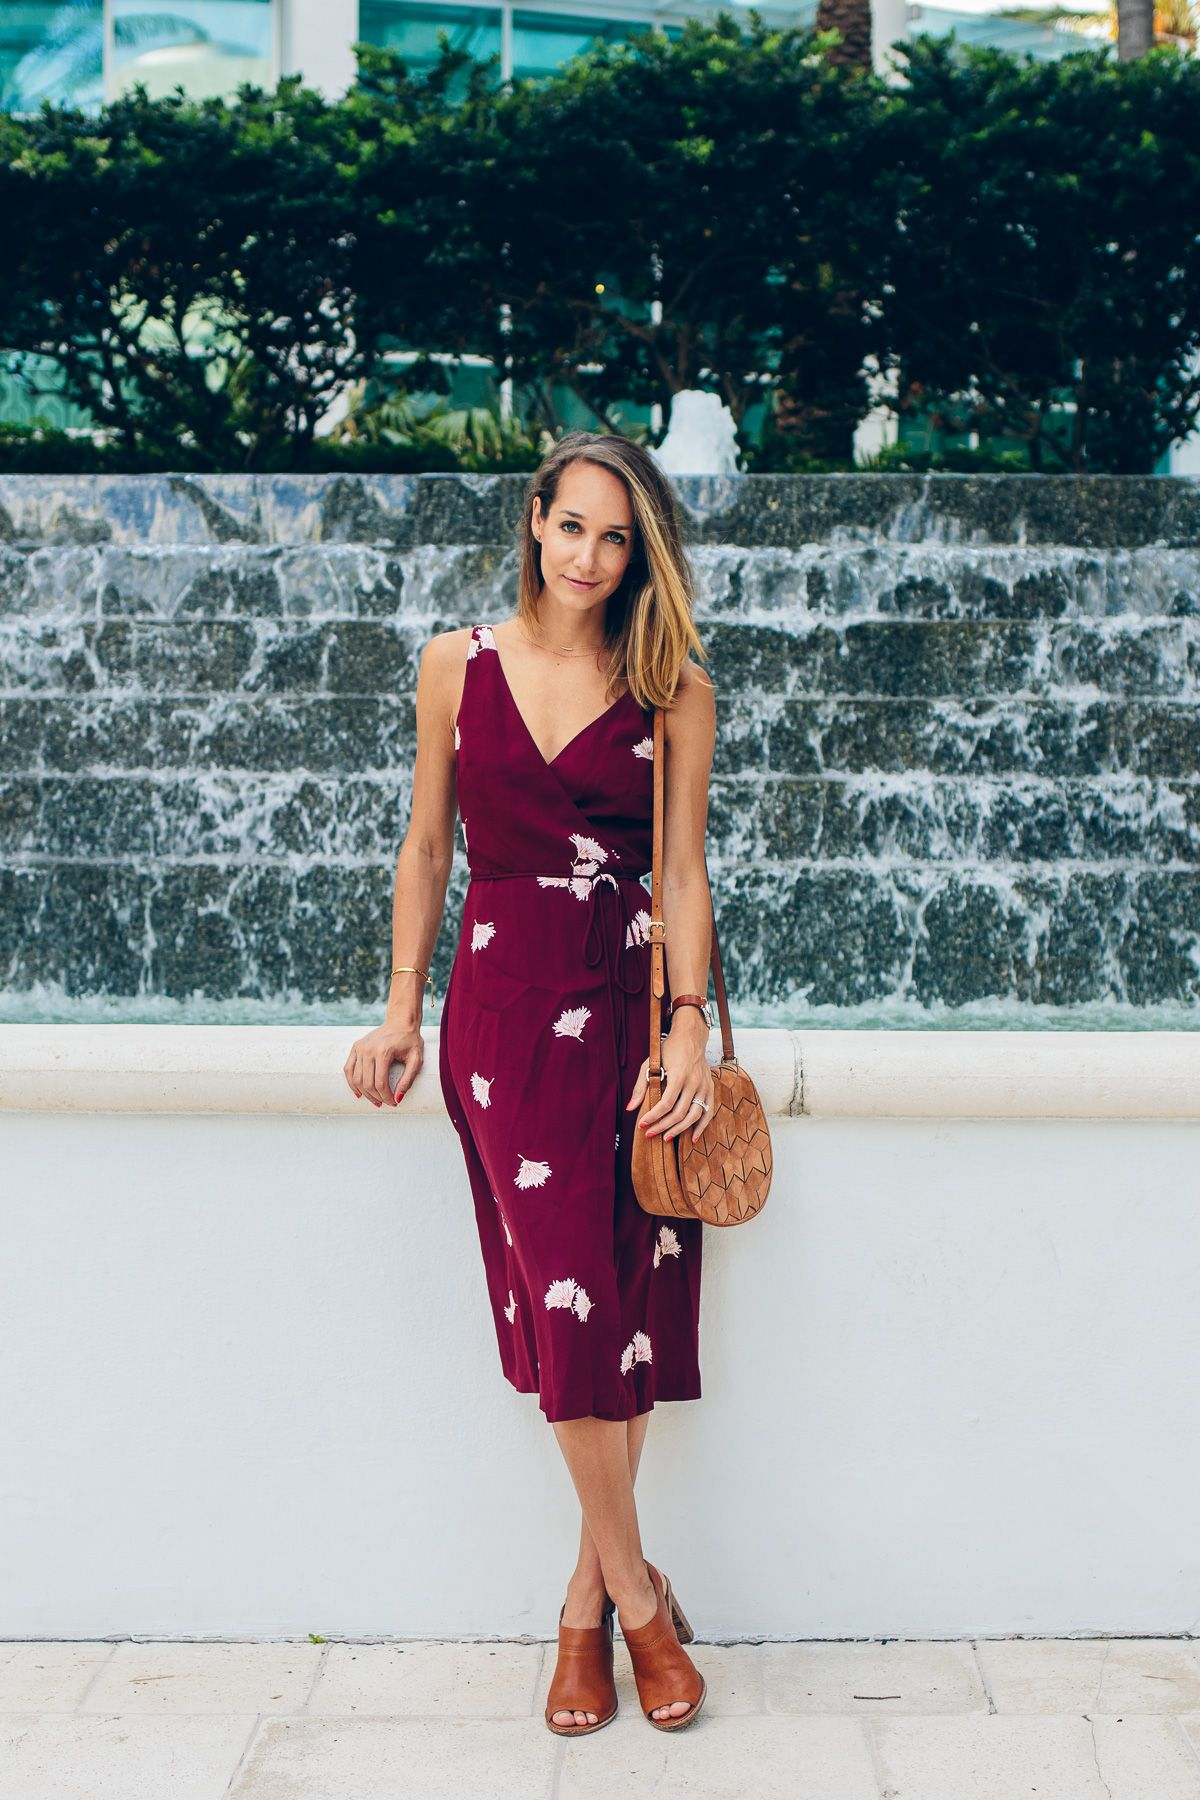 How To Wear A Wrap Dress The Fox She Chicago Style Blogger Wrap Dress Outfit Summer Dresses Fashion [ 1800 x 1200 Pixel ]